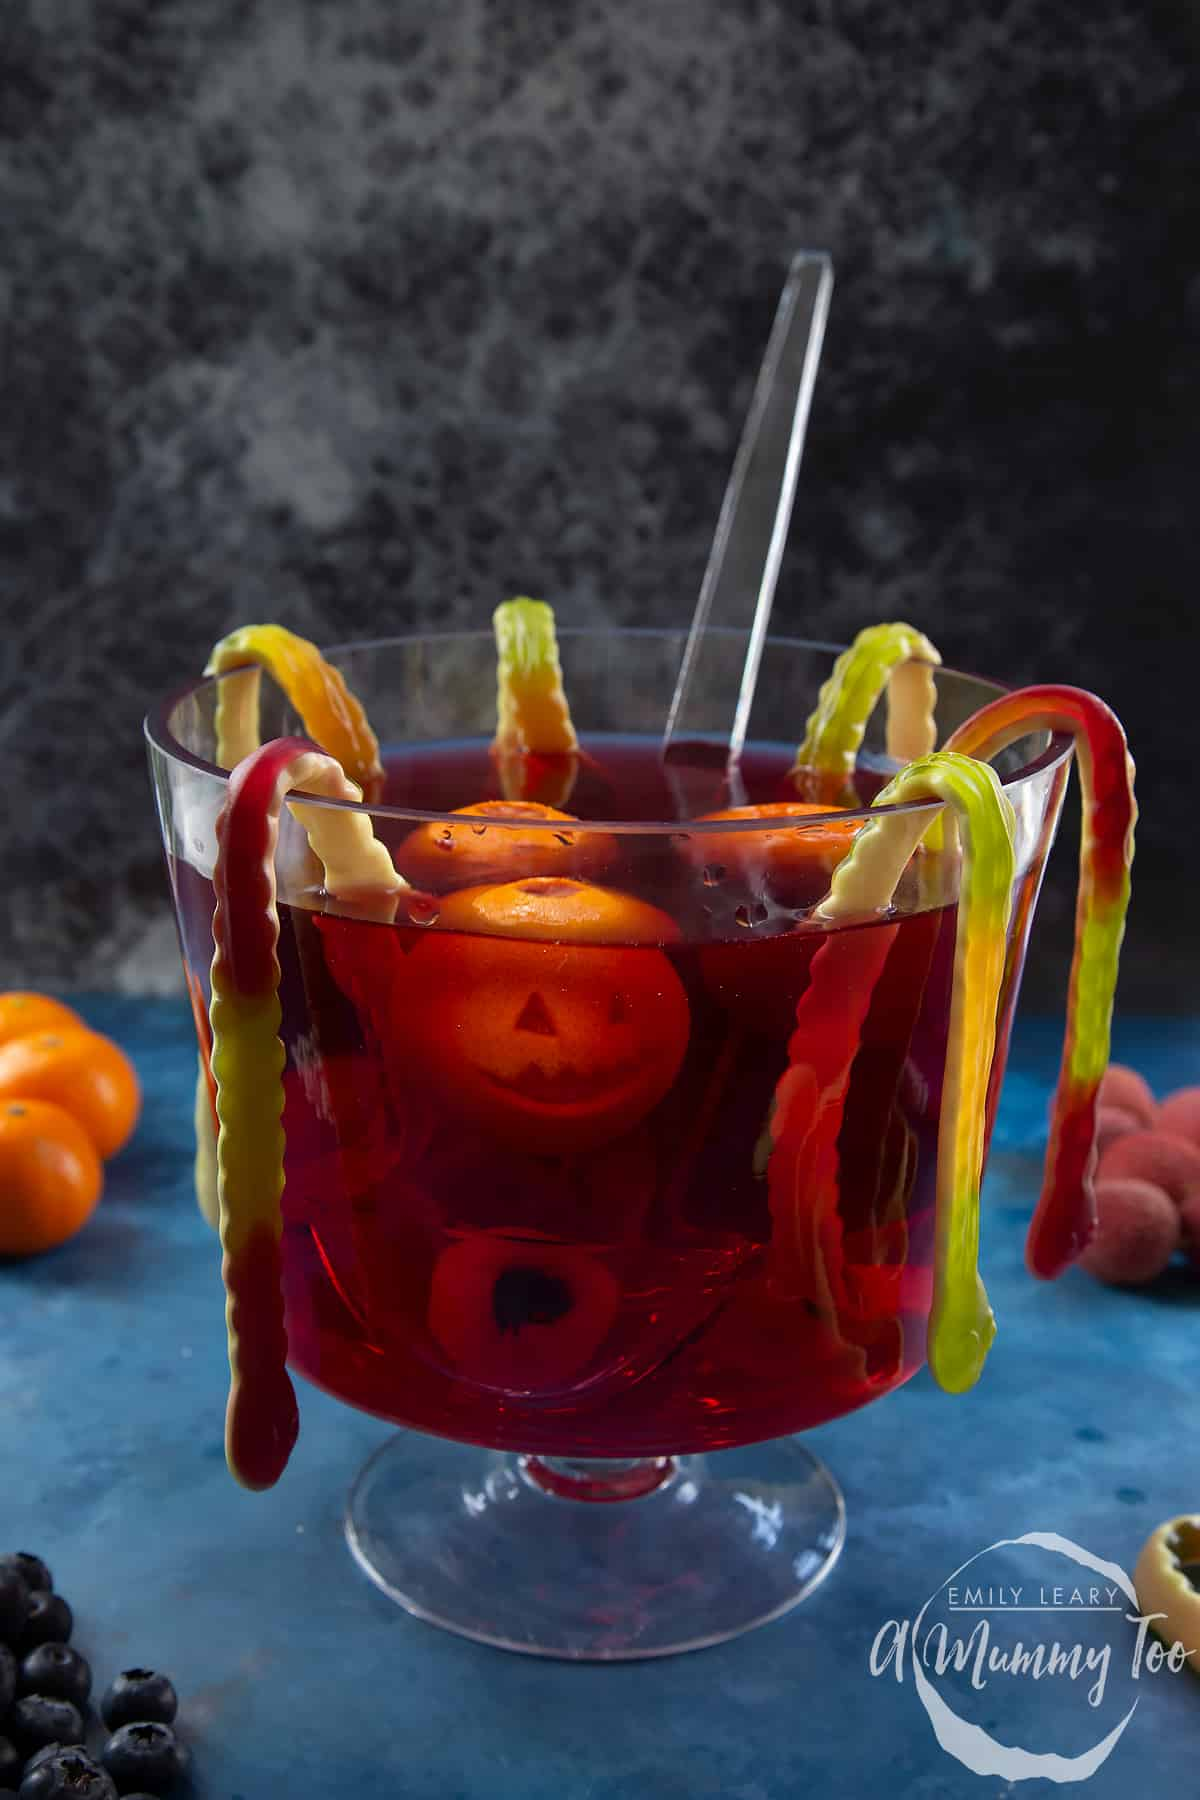 Halloween punch in a glass punch bowl. It is a red liquid, decorated with gummy snakes, jack'o'lantern clementines and lychee and blueberry eyeballs.